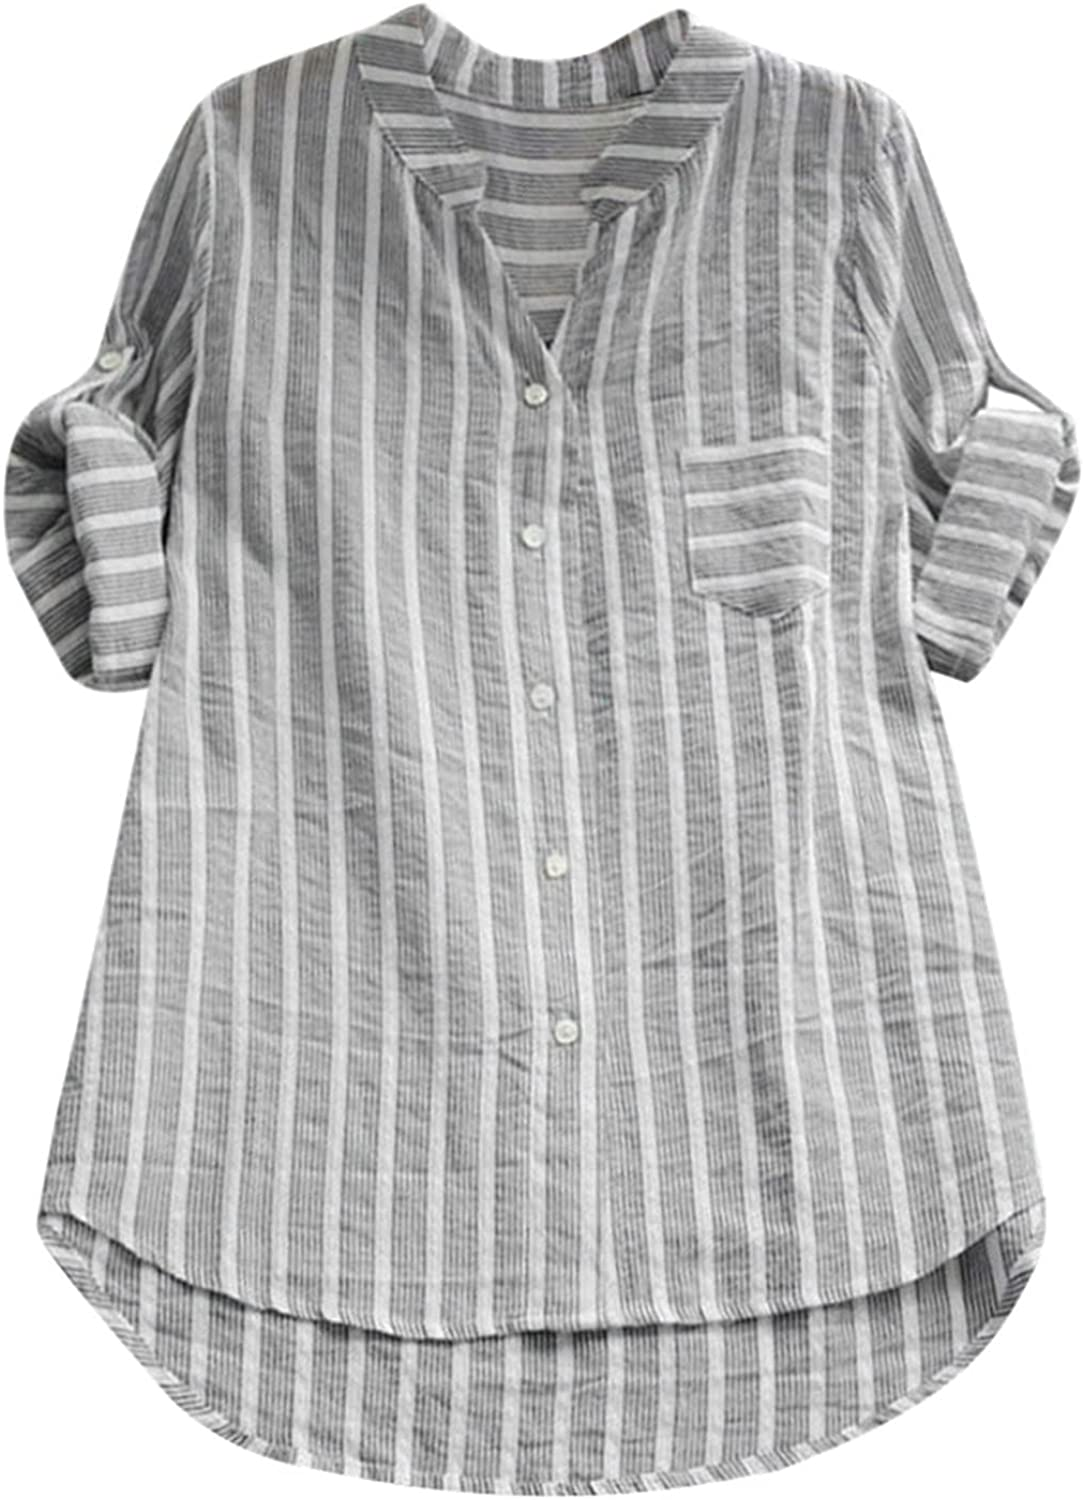 Kanzd Tops for Women Casual Fashion V-Neck Rolled Sleeve Cotton Linen Stripe Shirt Button Down Long Shirt Tunic Blouse